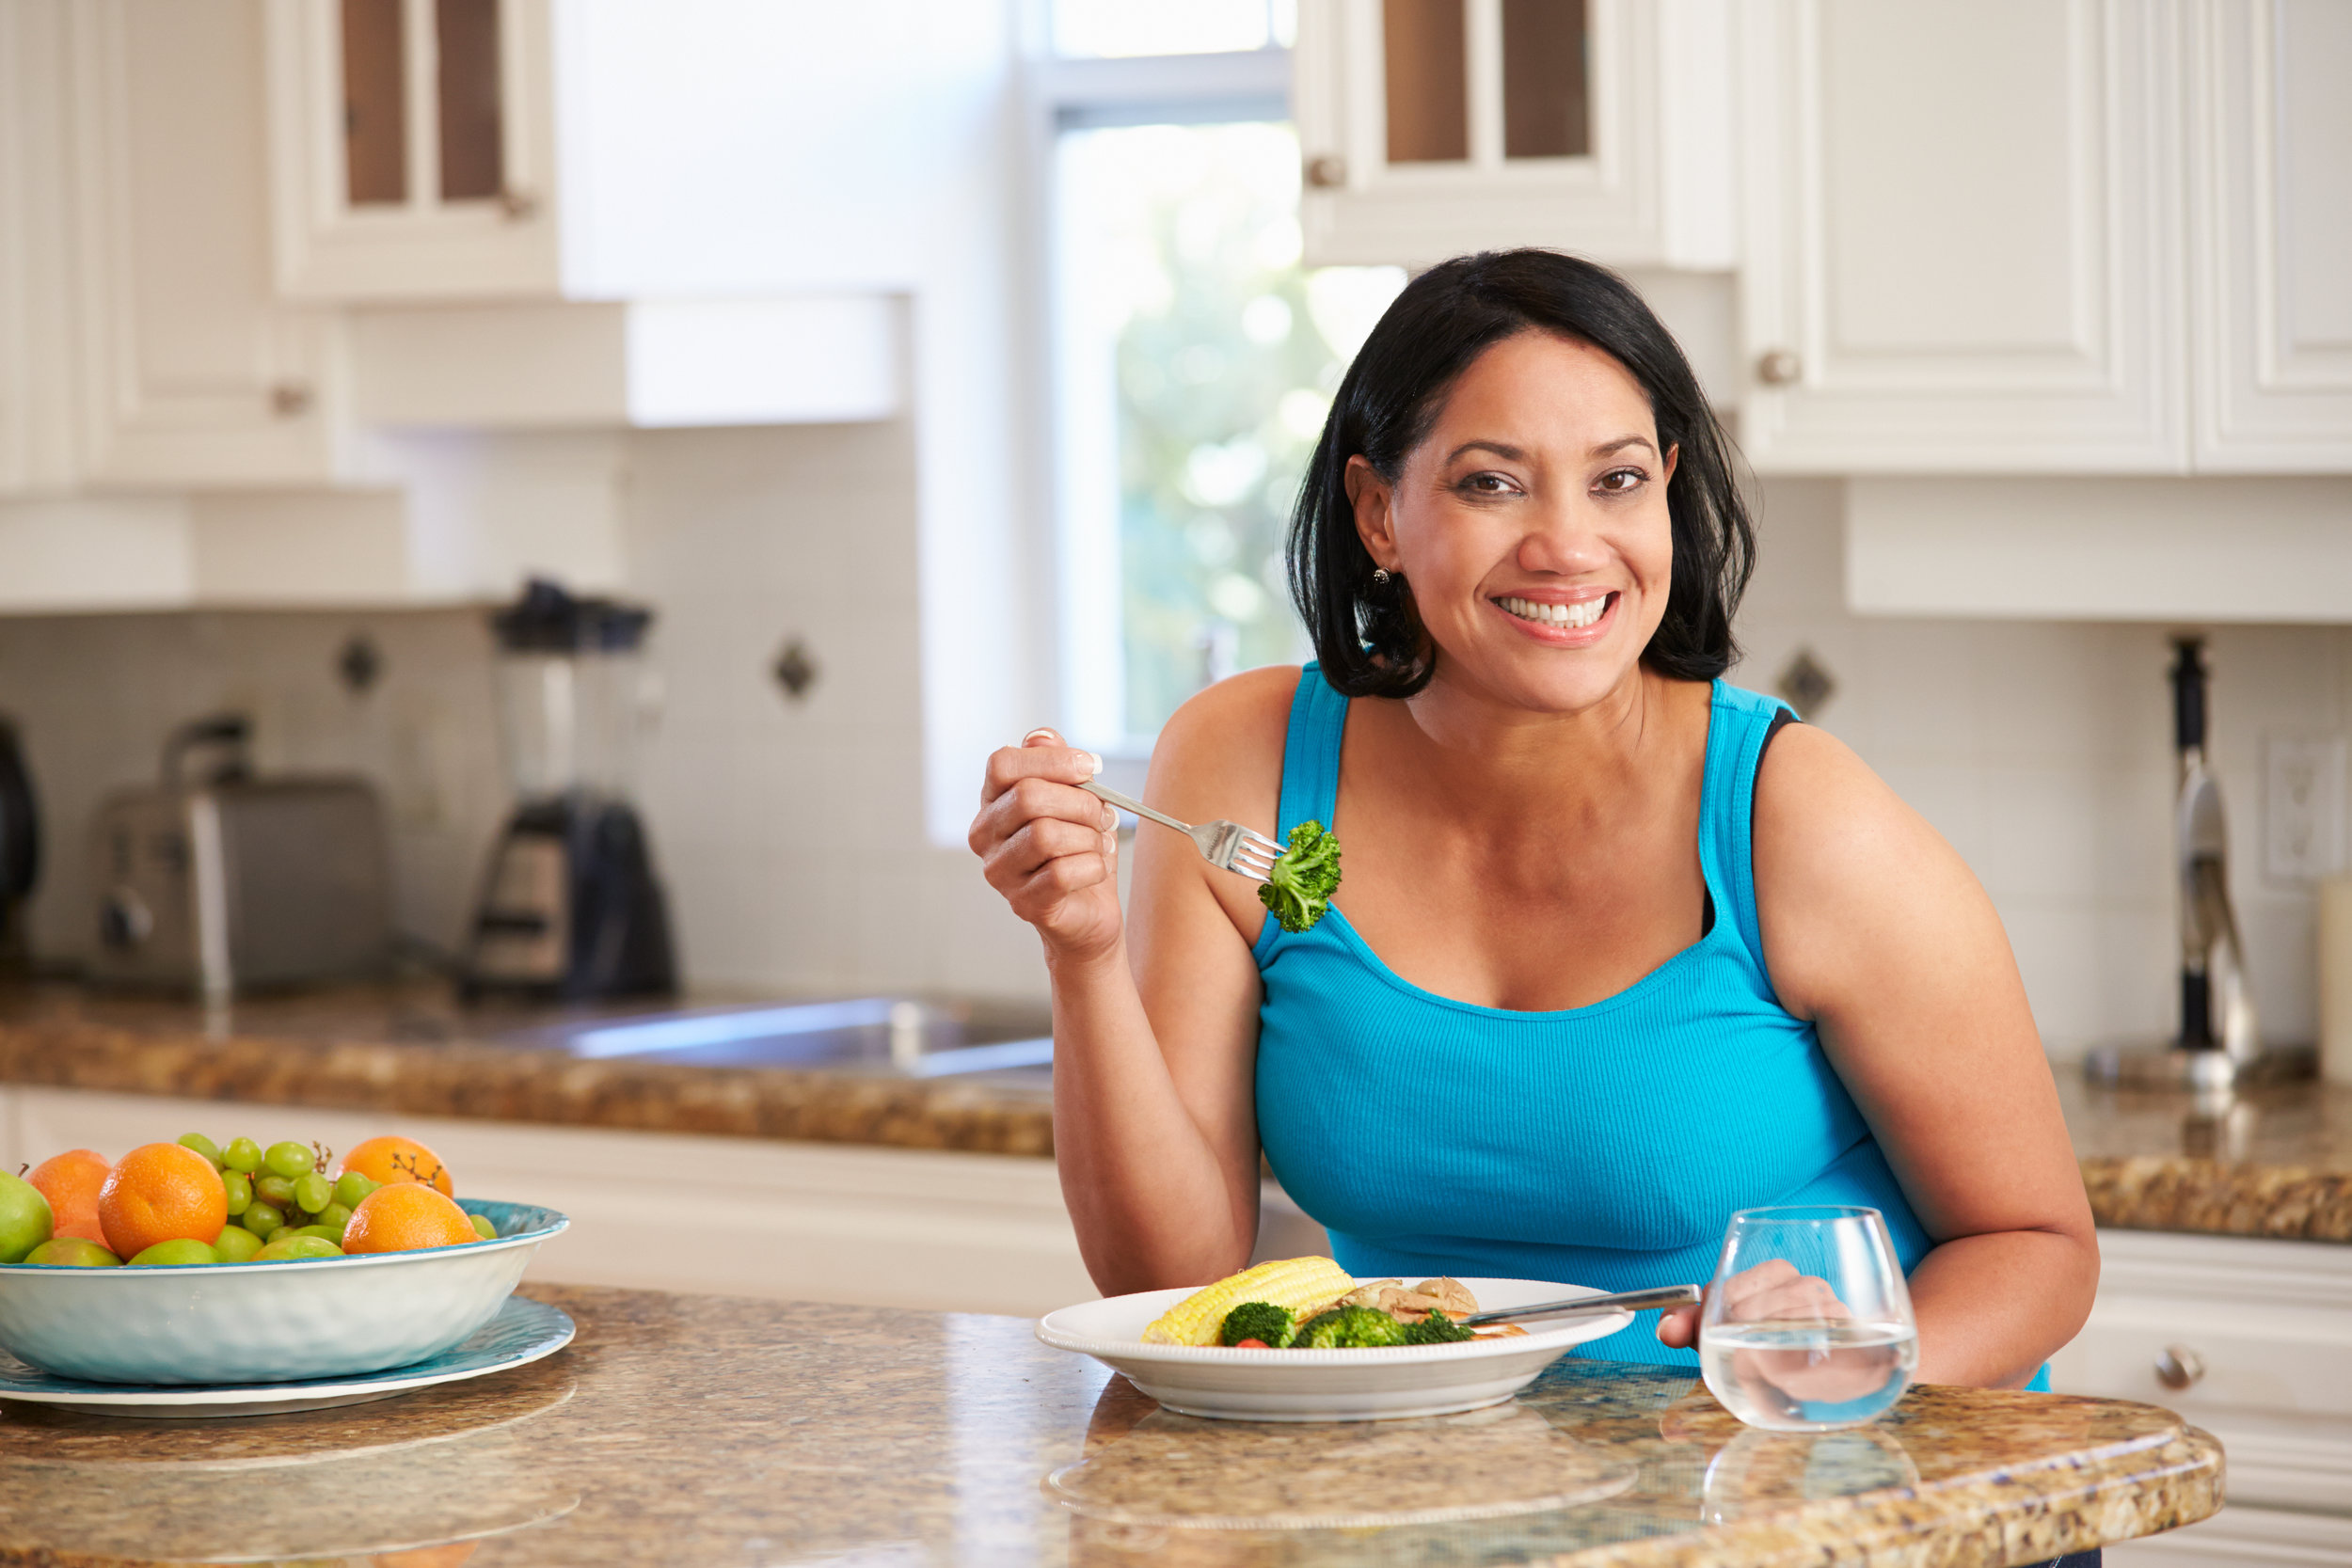 Eating lean greens and a healthier diet can reduce your risk of prediabetes.